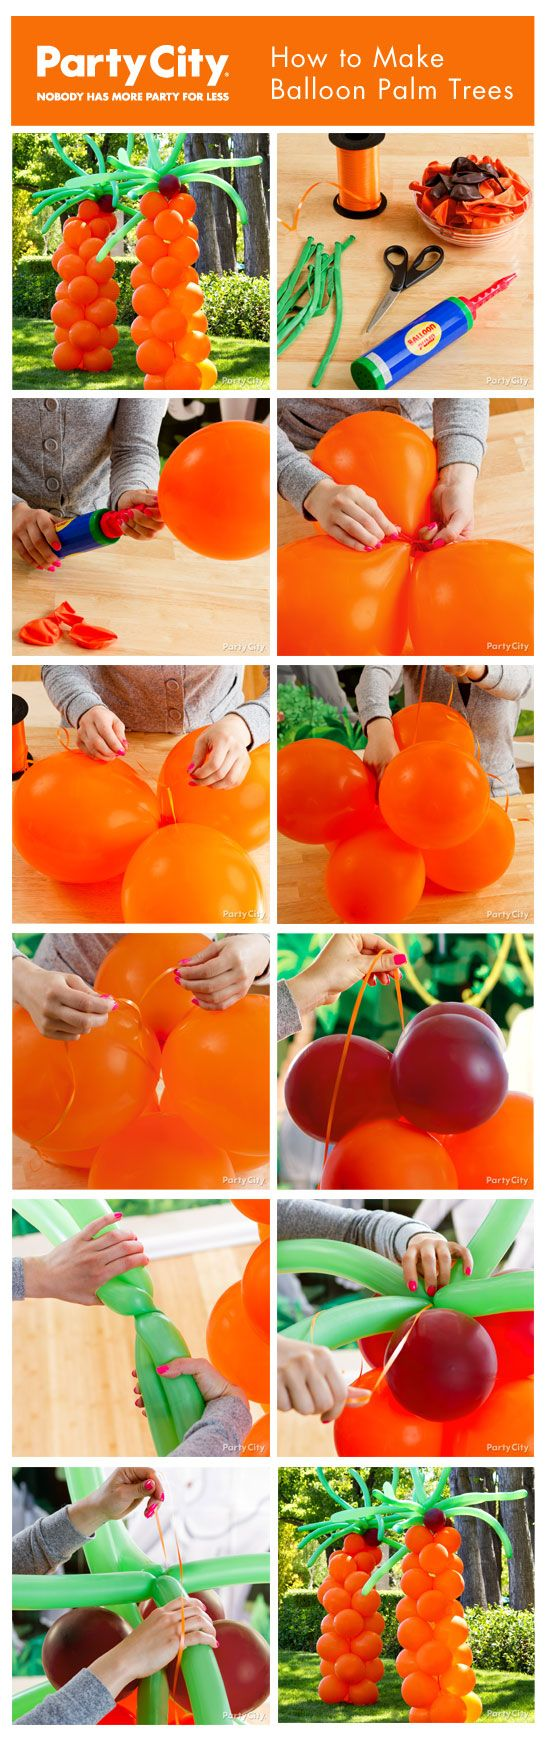 How to make balloon palm trees - easy pictorial tutorial!